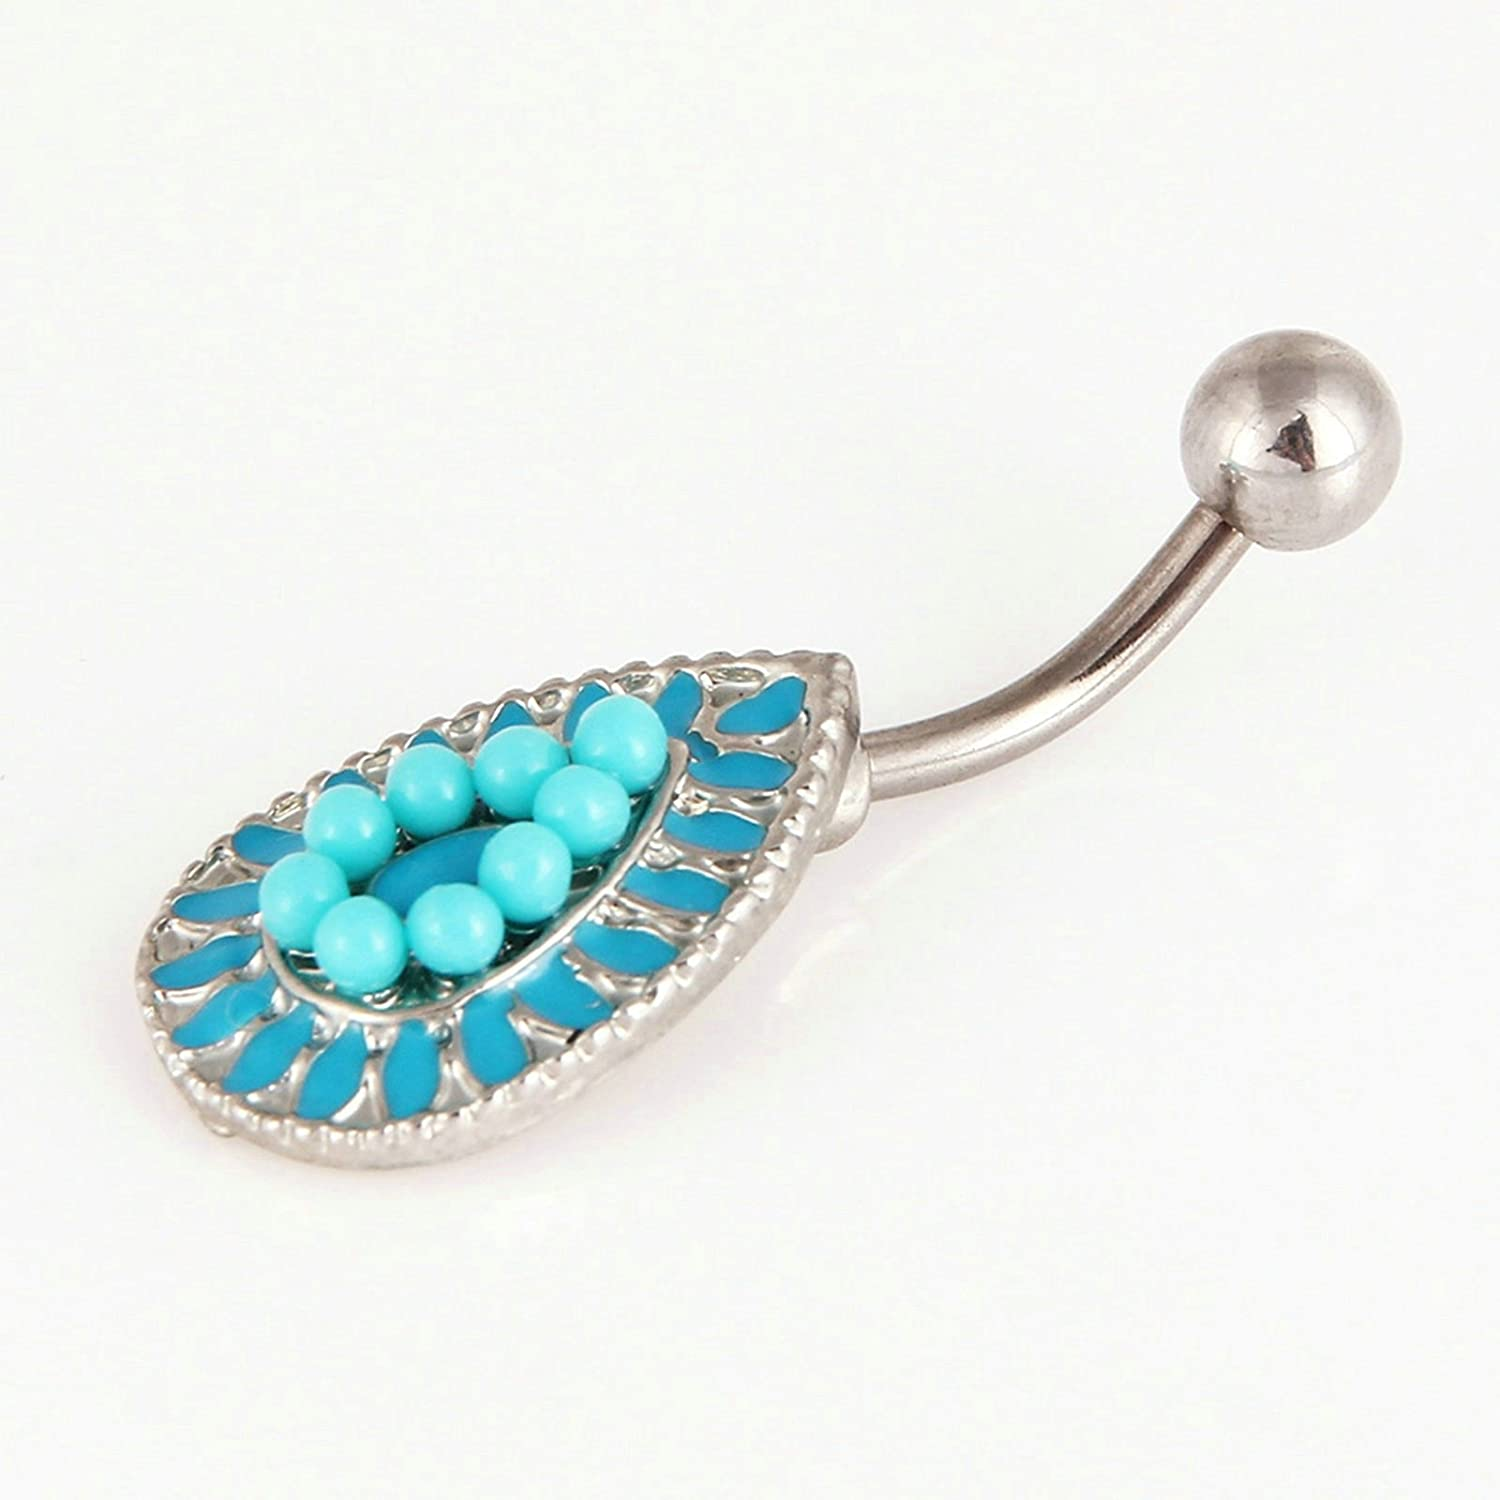 Aooaz Belly Button Piercing Rings Stainless Steel Water drop Belly Ring Body Piercing Body Piercing Blue